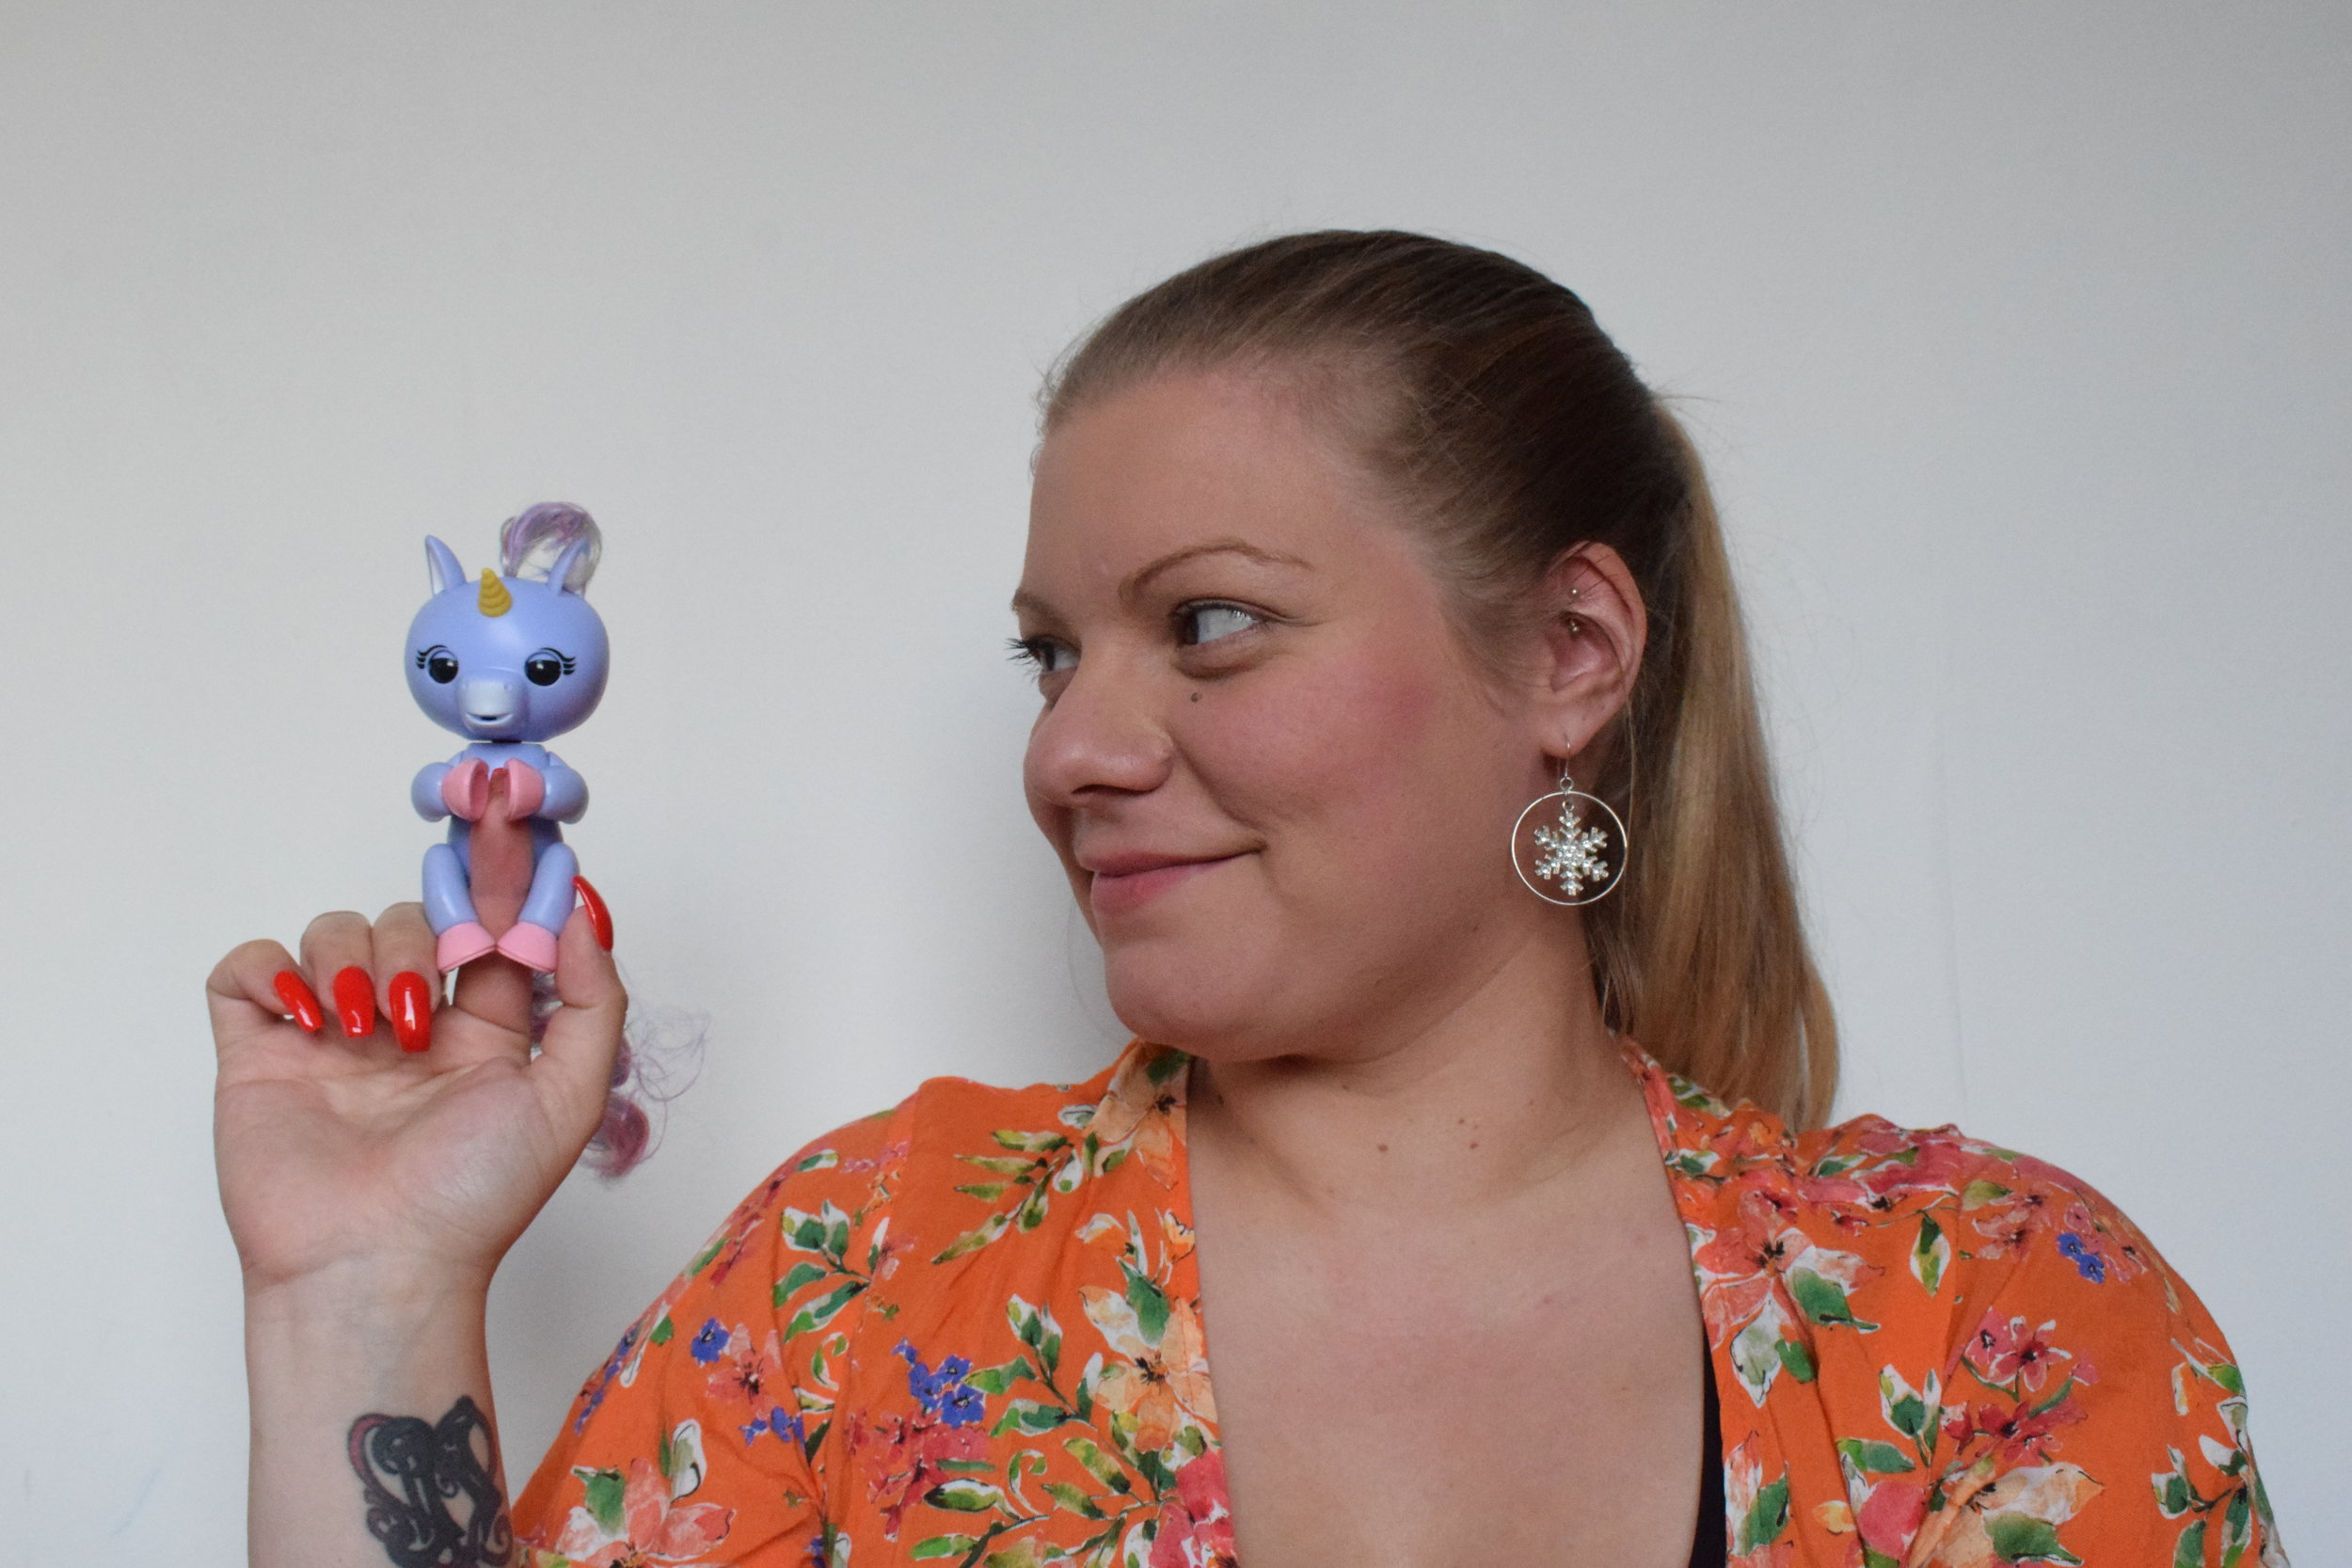 Fingerlings Alika the purple baby unicorn Me Becoming Mum's Stocking Fillers for Under 5s